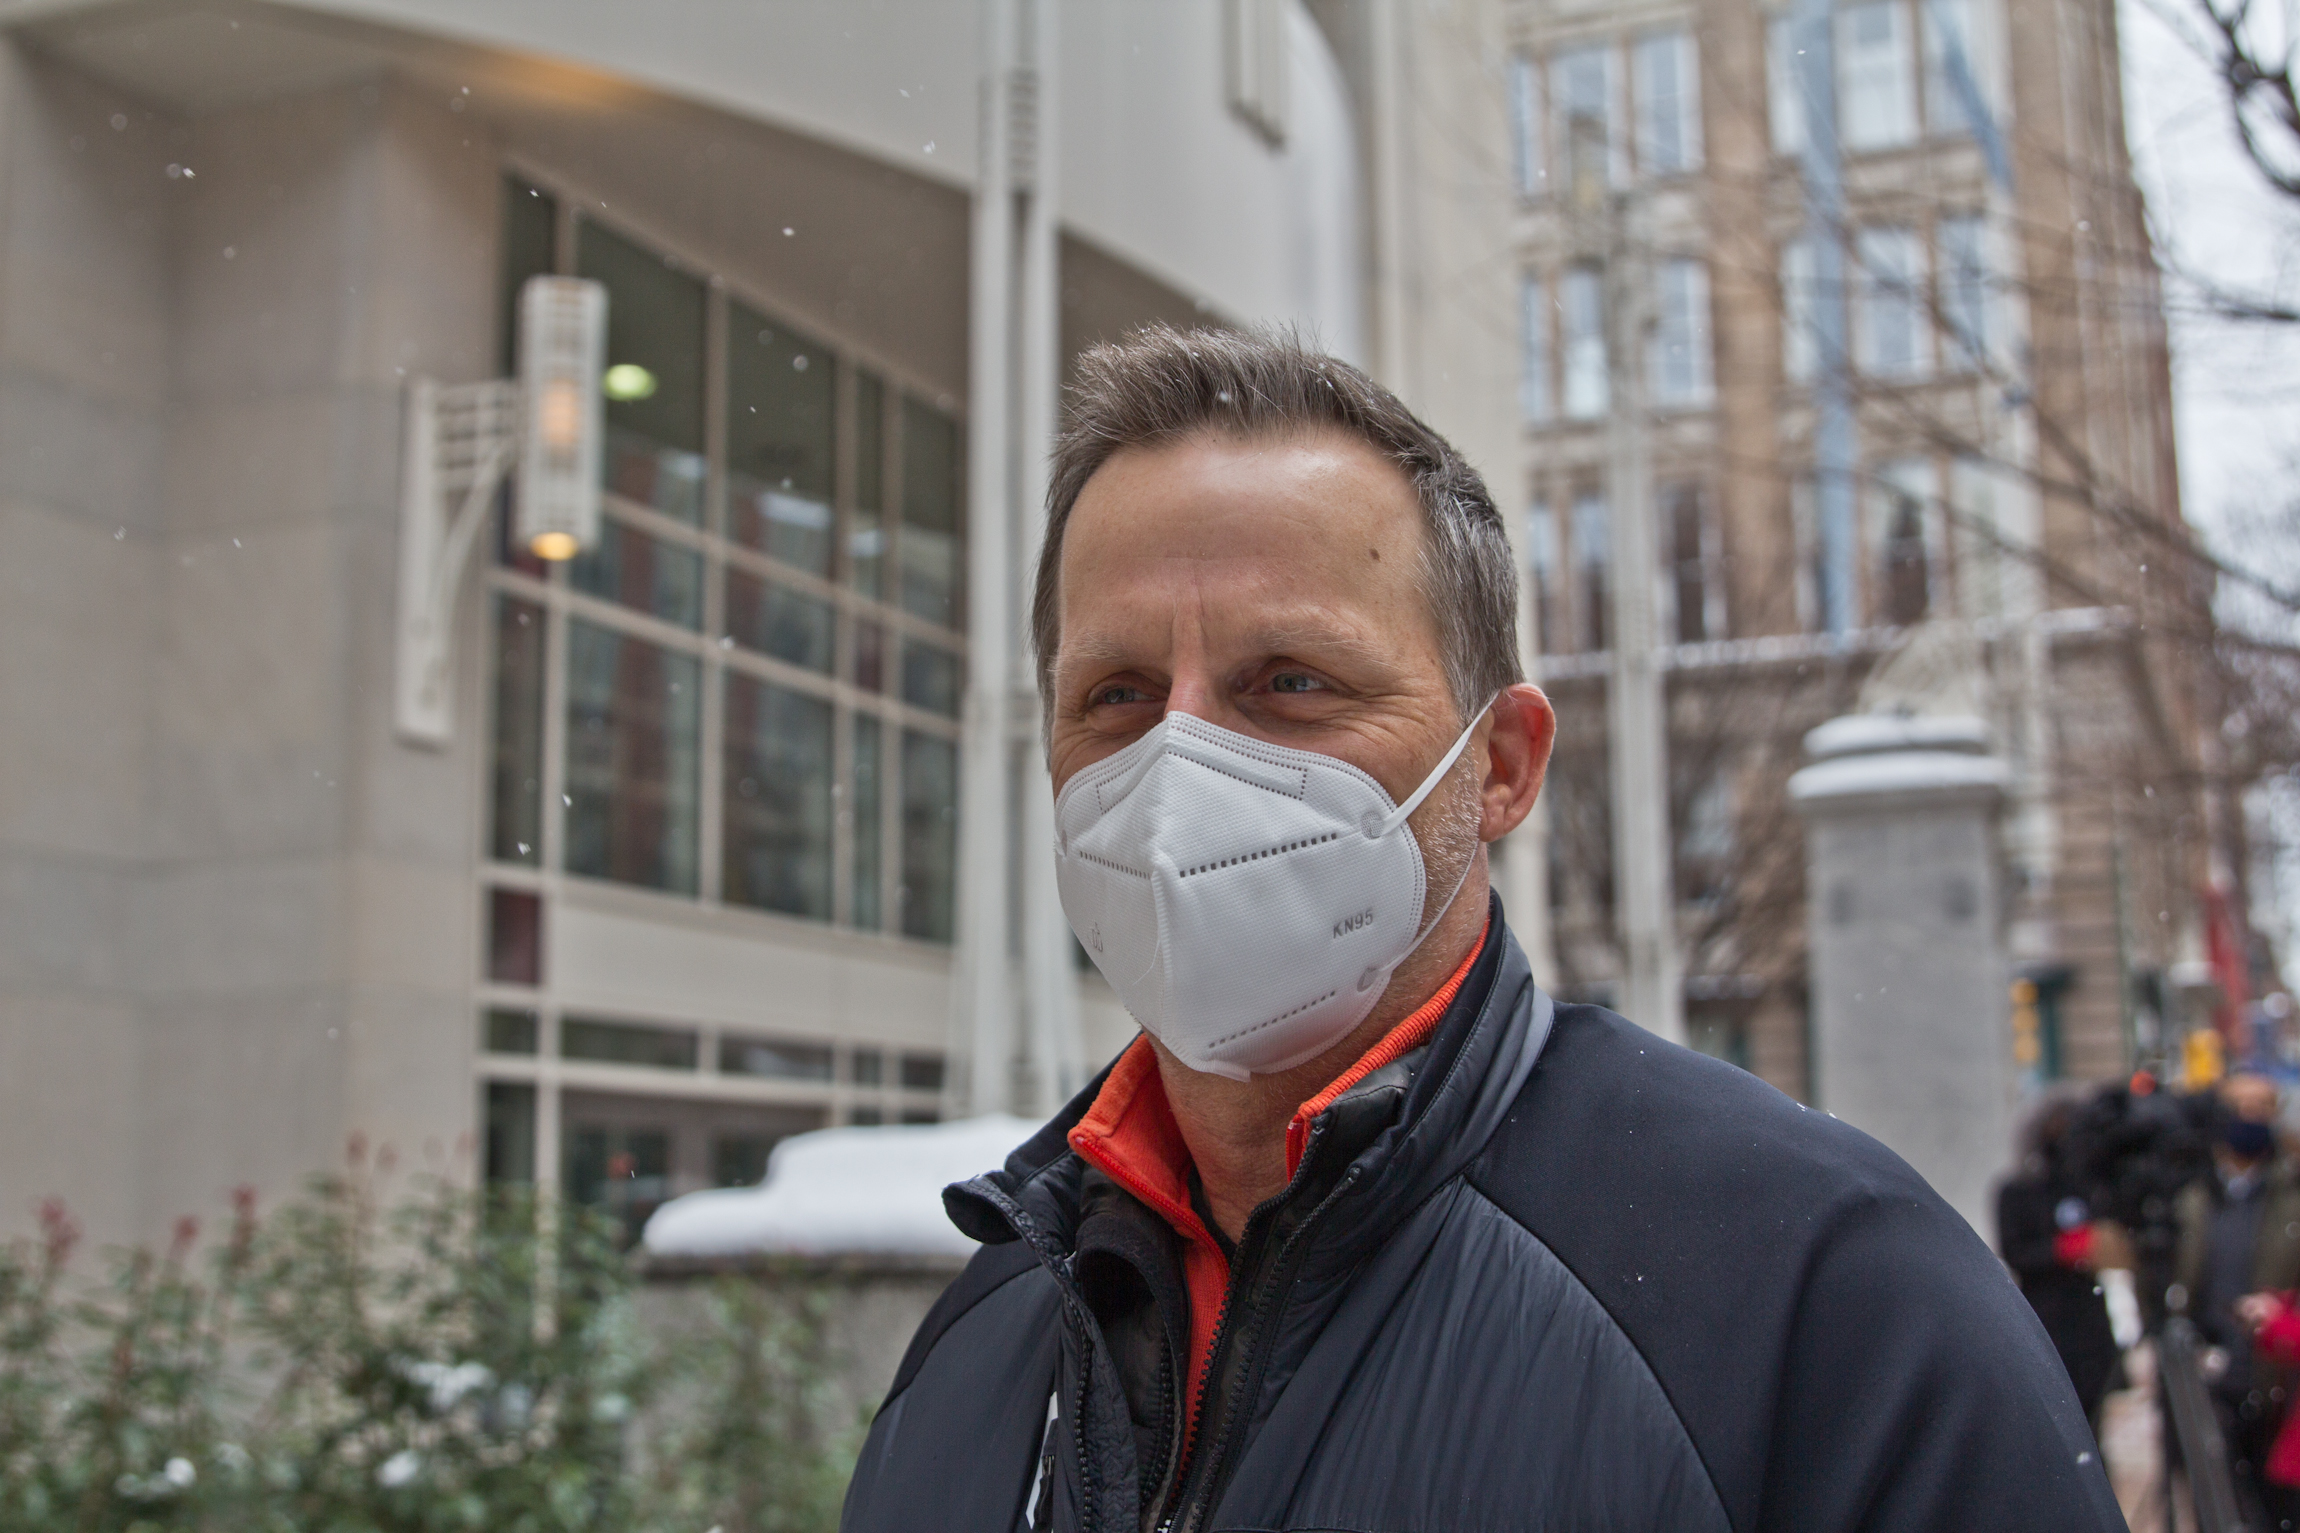 Ted Jelesiewicz, wearing a face mask, stands outside the vaccine clinic